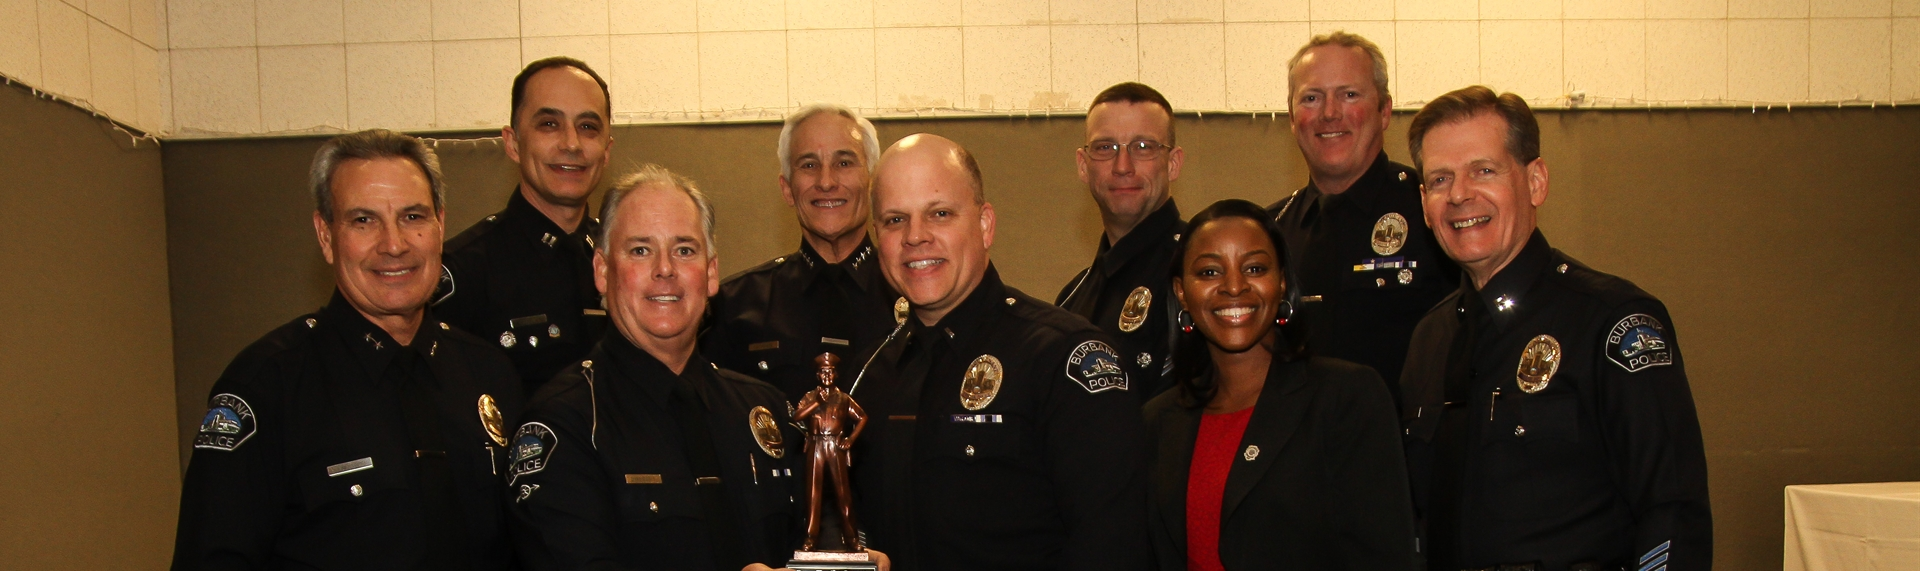 CONGRATULATIONS TO OUR 2015 OFFICER OF THE YEAR!